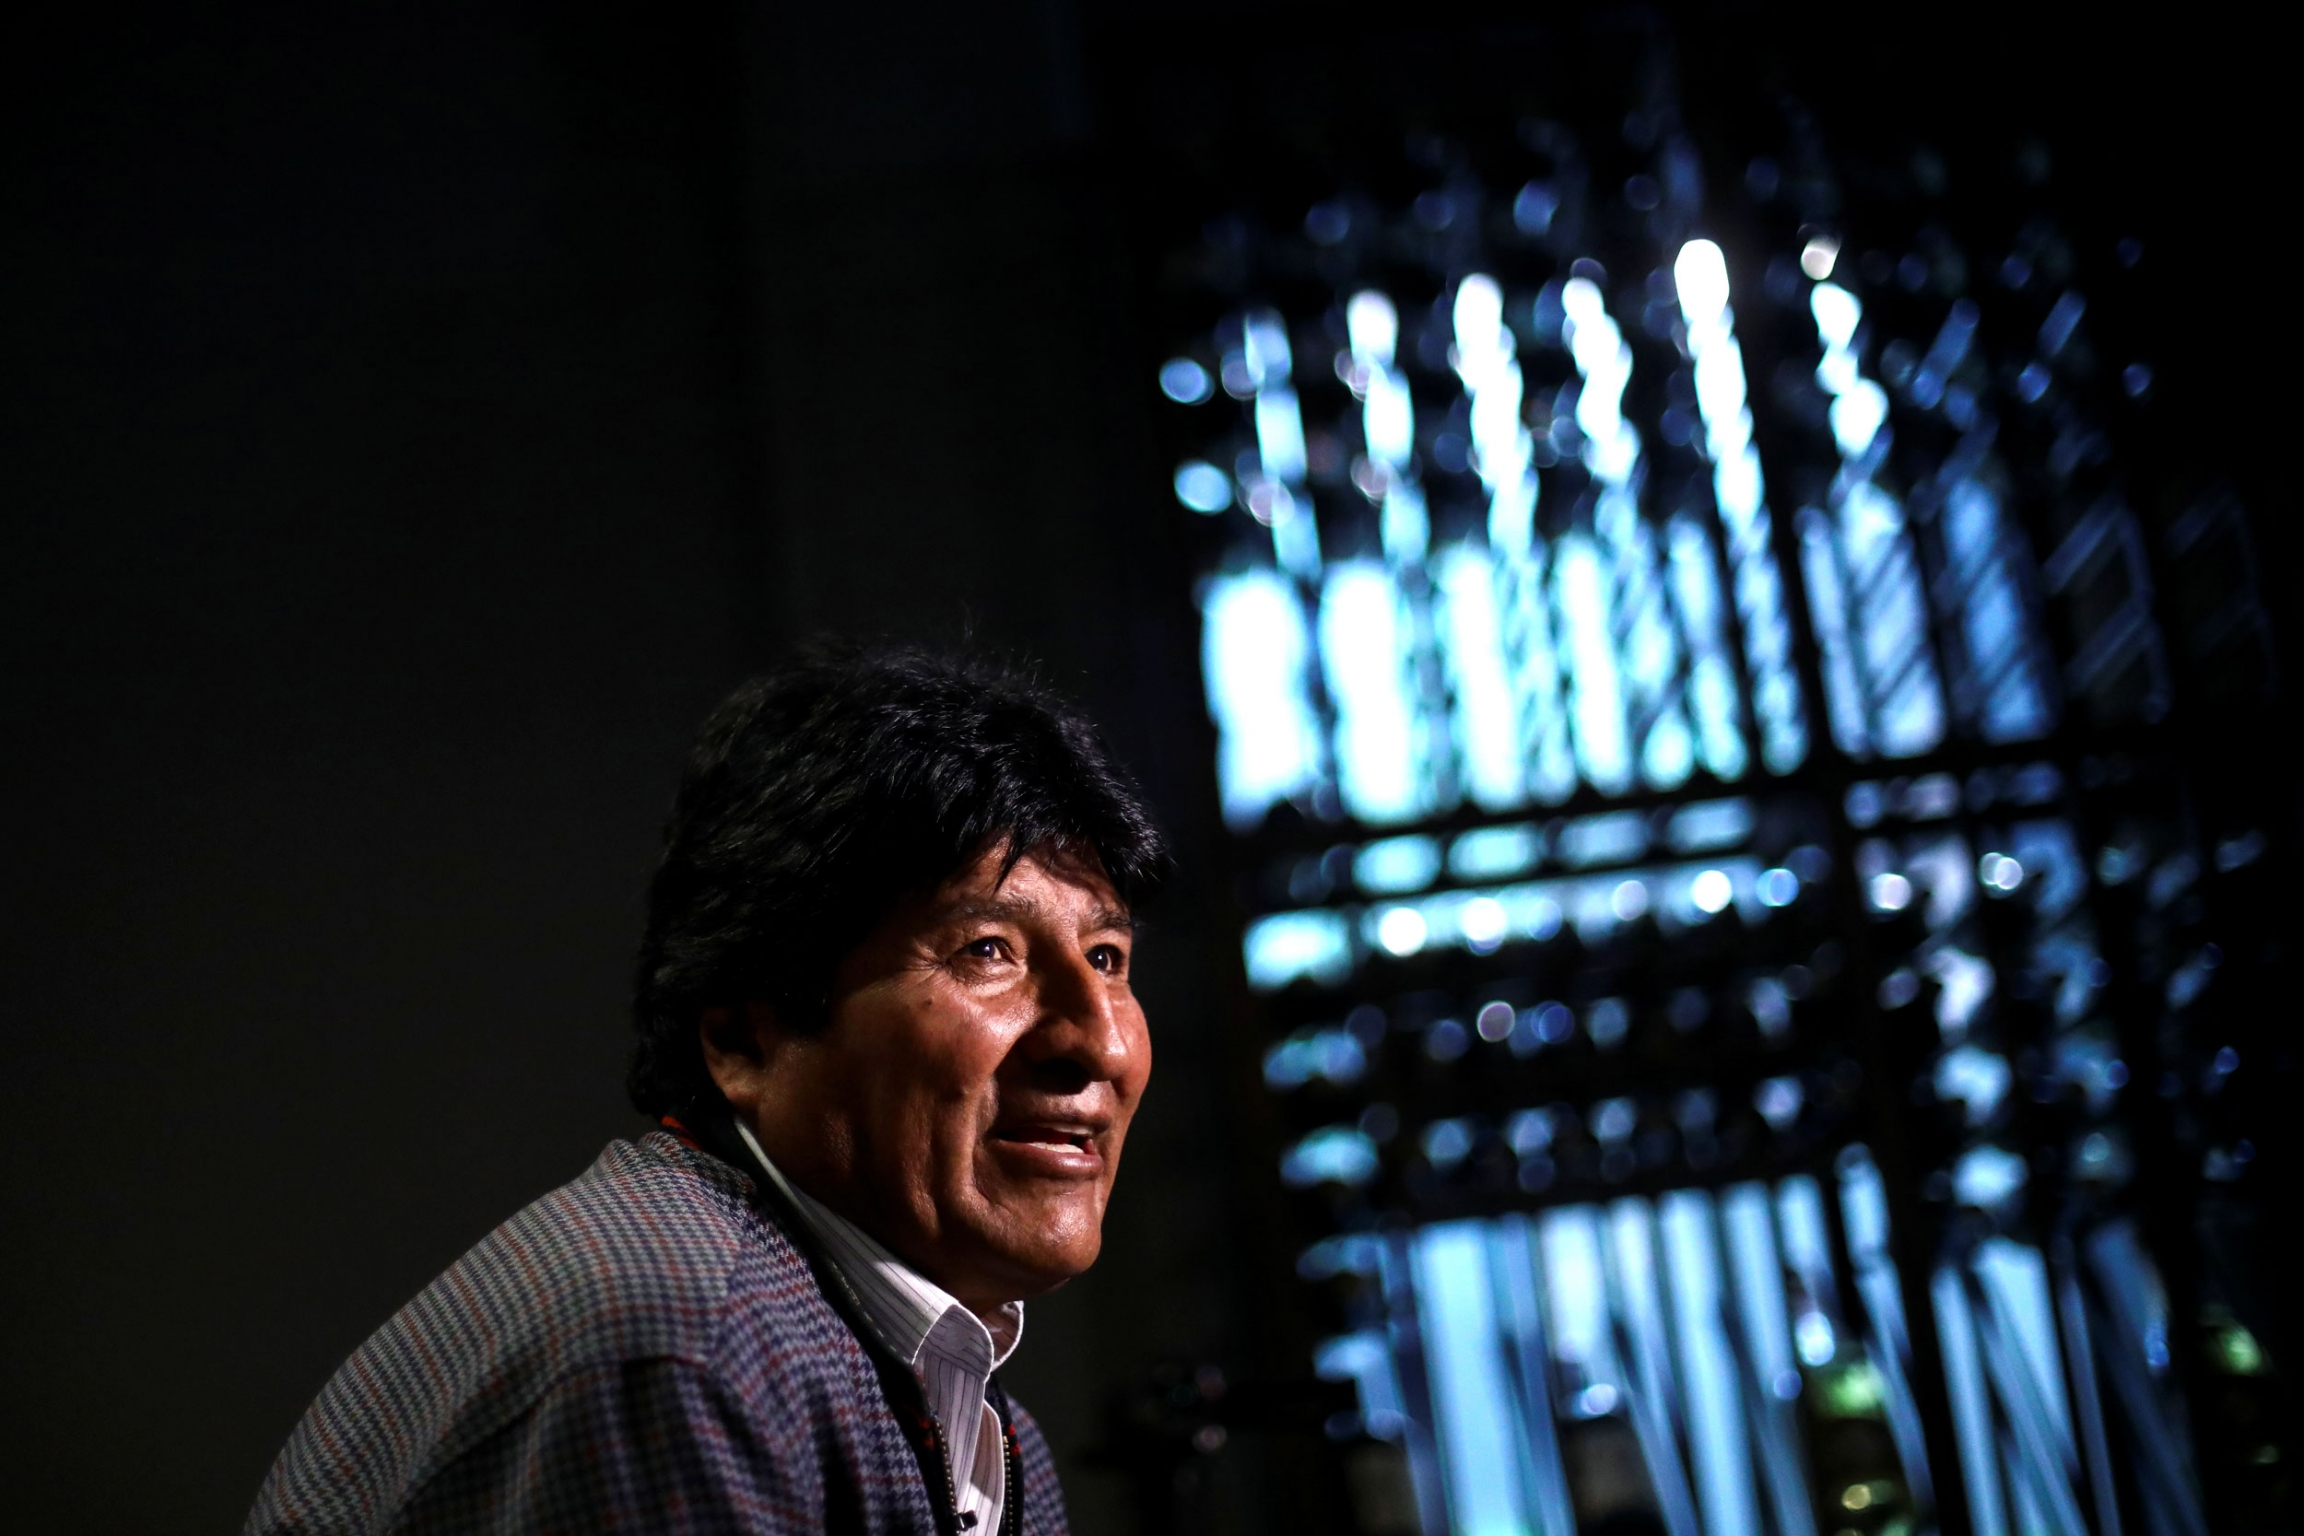 Former Bolivian President Evo Morales is shown wearing a jacket with light streaming through a window in the distance.